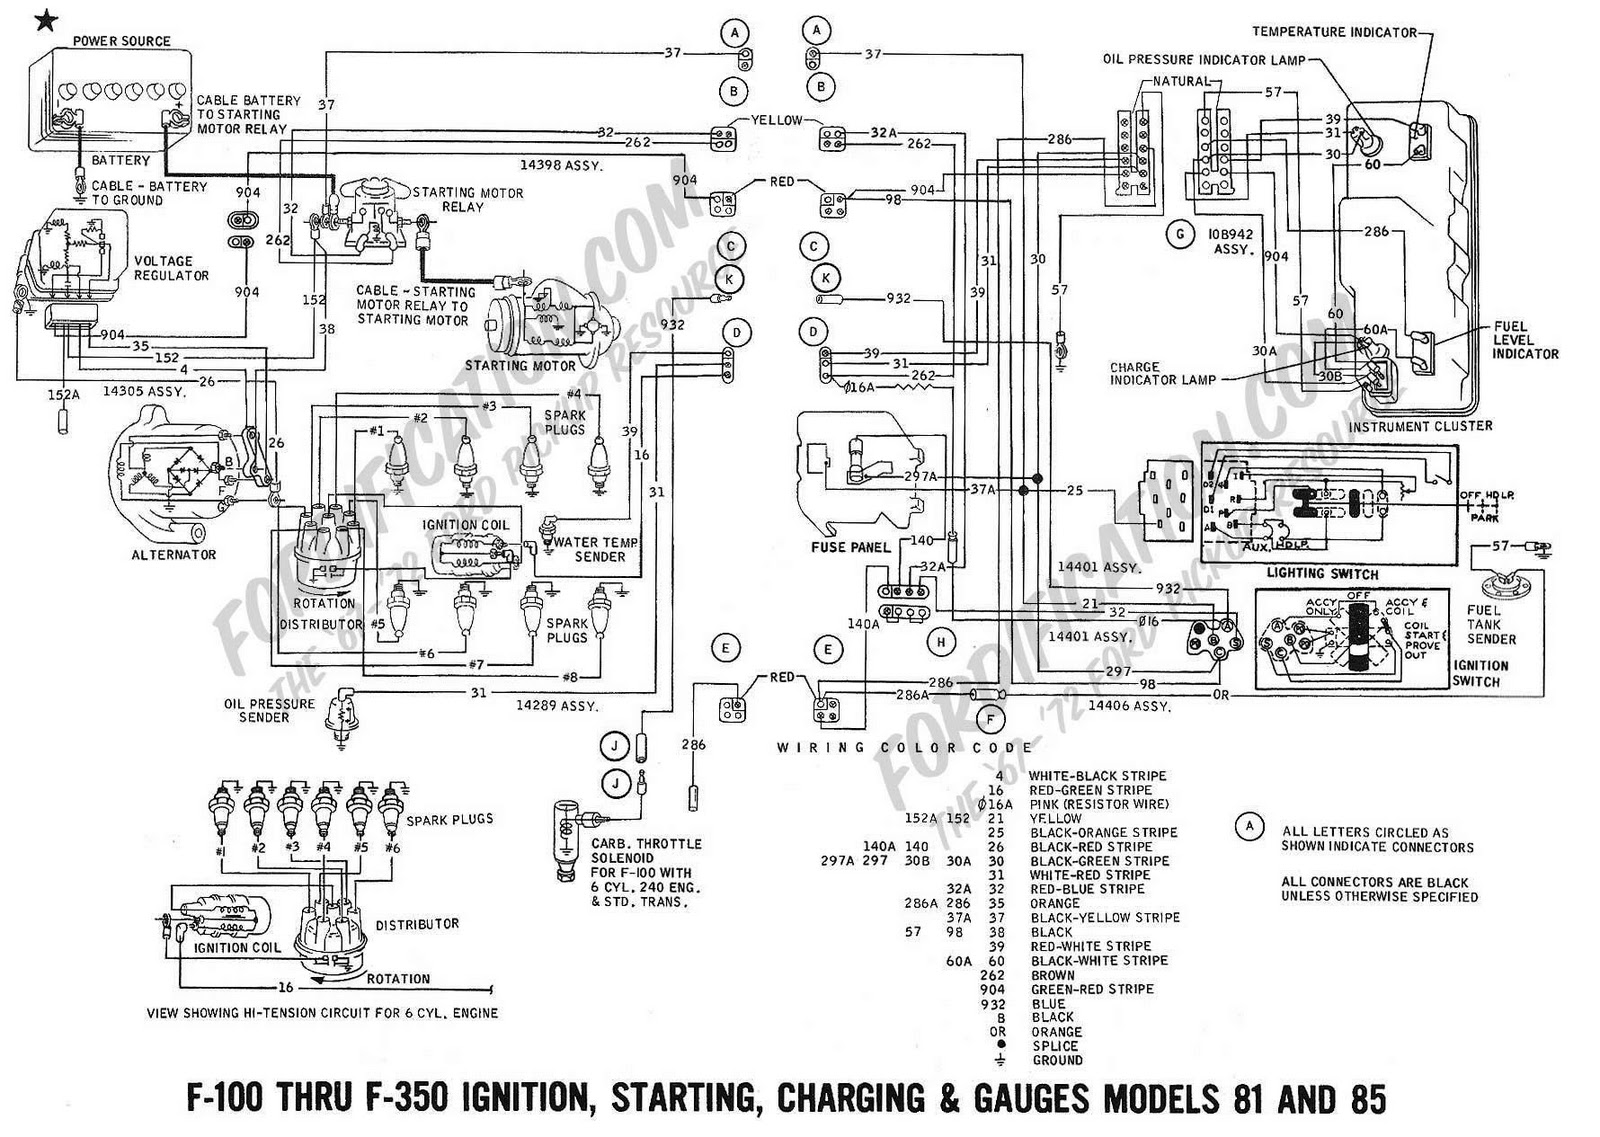 1969 Ford F100 F350 Ignition Starting: 1986 Mustang Headlight Switch Wiring Diagram At Nayabfun.com